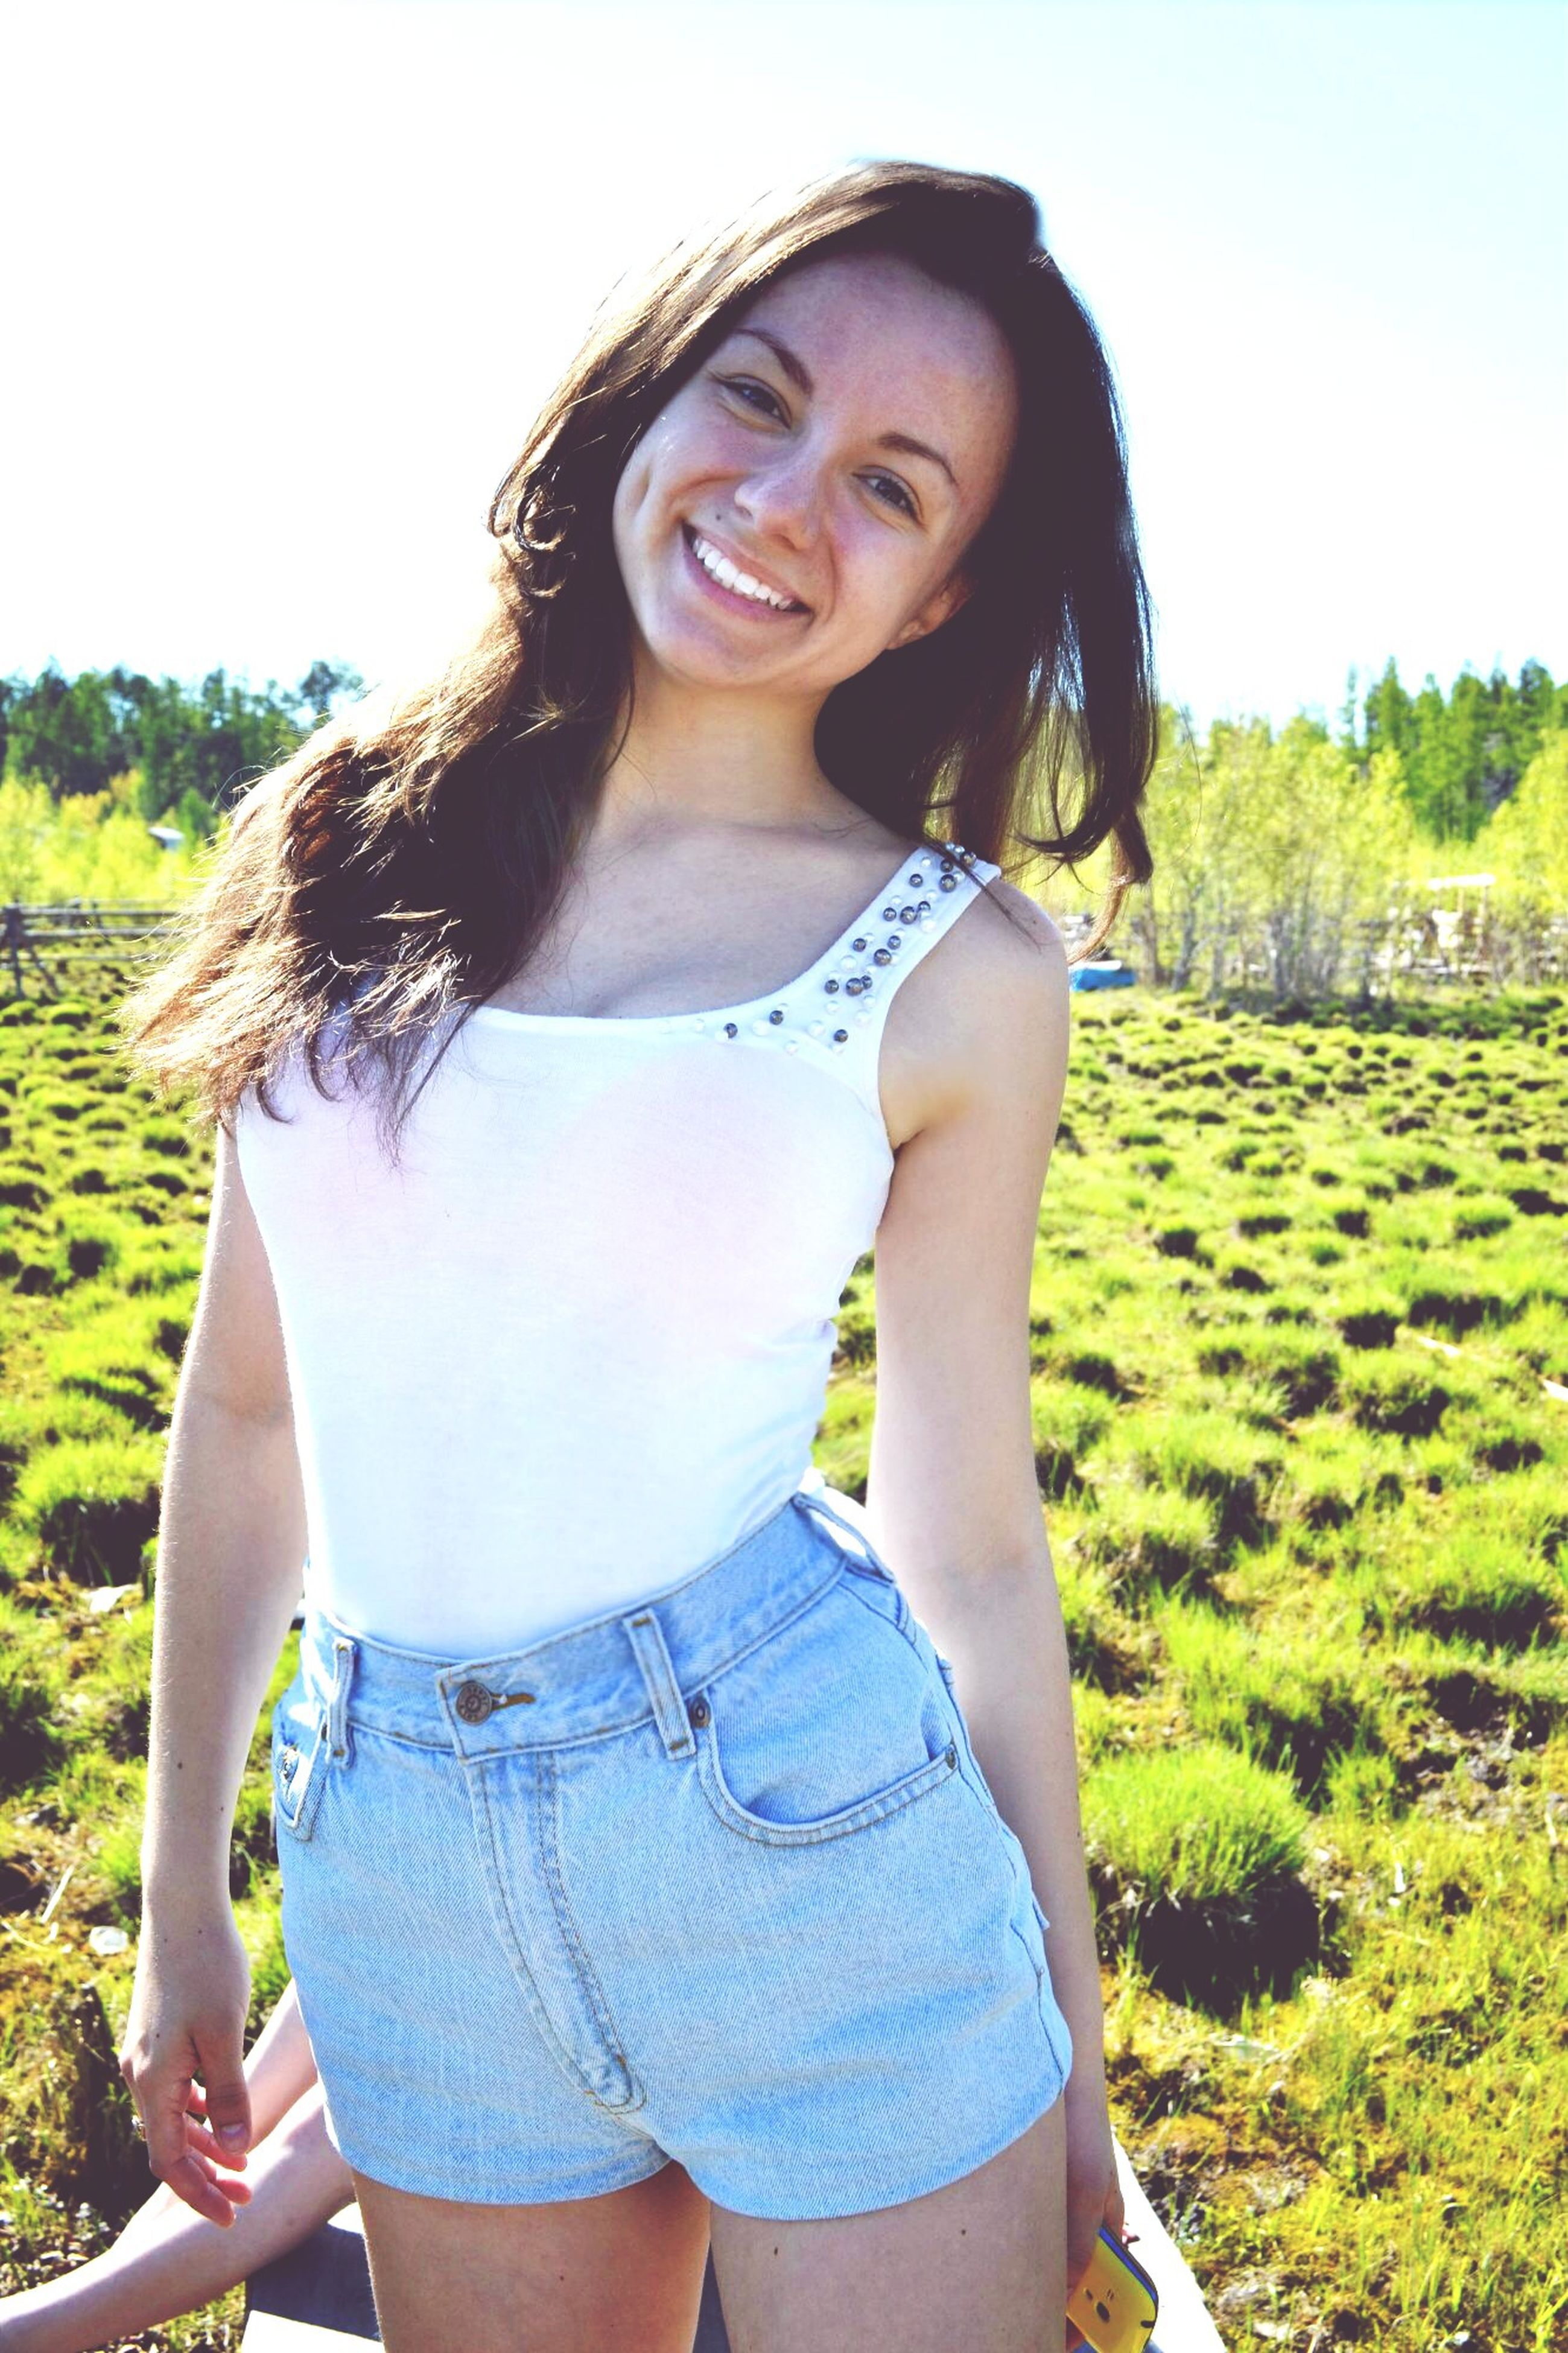 young adult, person, looking at camera, portrait, young women, casual clothing, lifestyles, front view, smiling, standing, leisure activity, three quarter length, happiness, long hair, sunglasses, toothy smile, outdoors